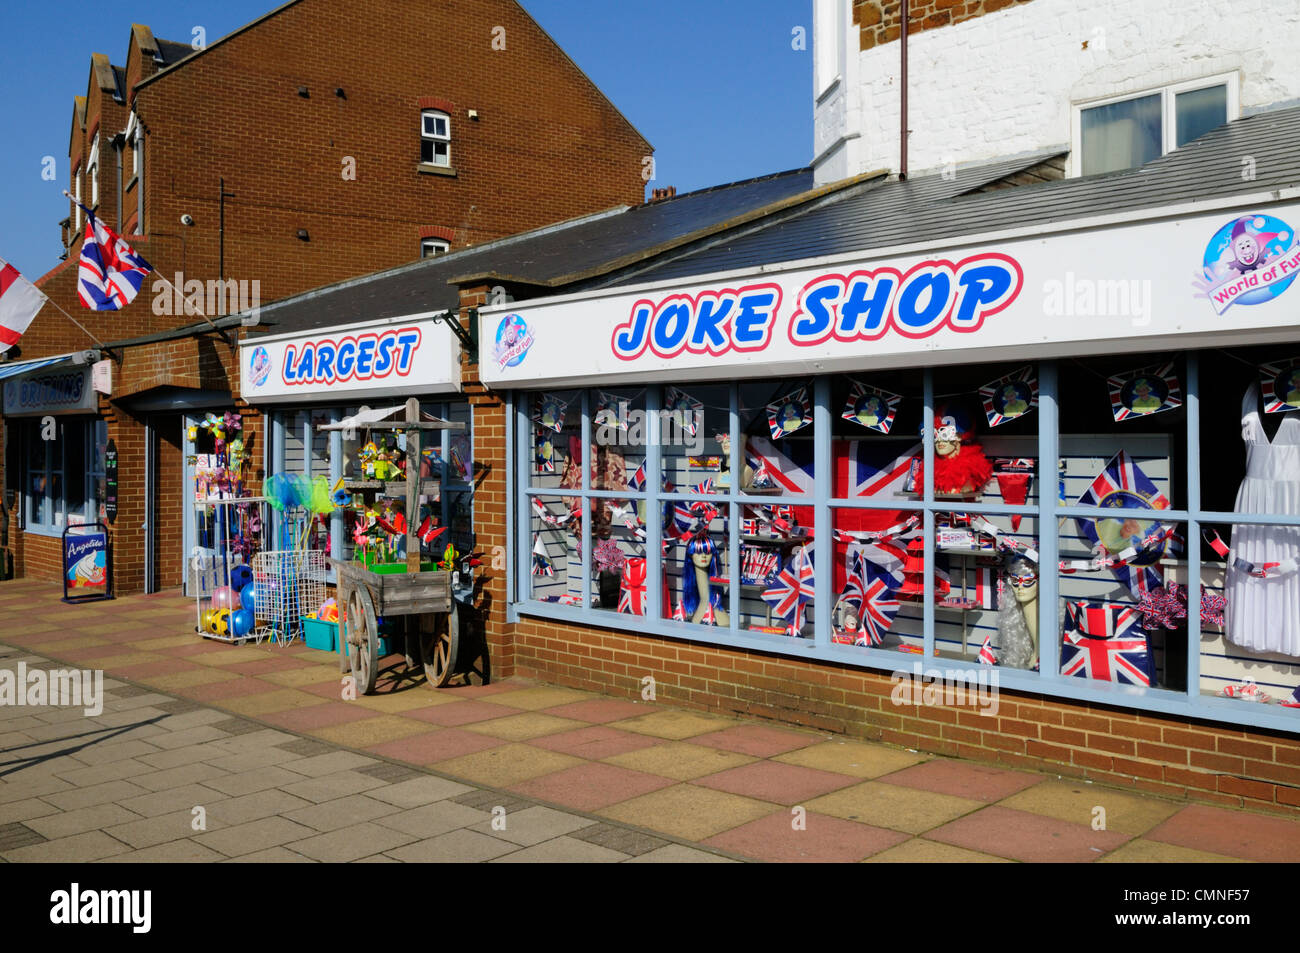 The Online Joke Shop Britain 39s Largest Joke Shop Hunstanton Norfolk England